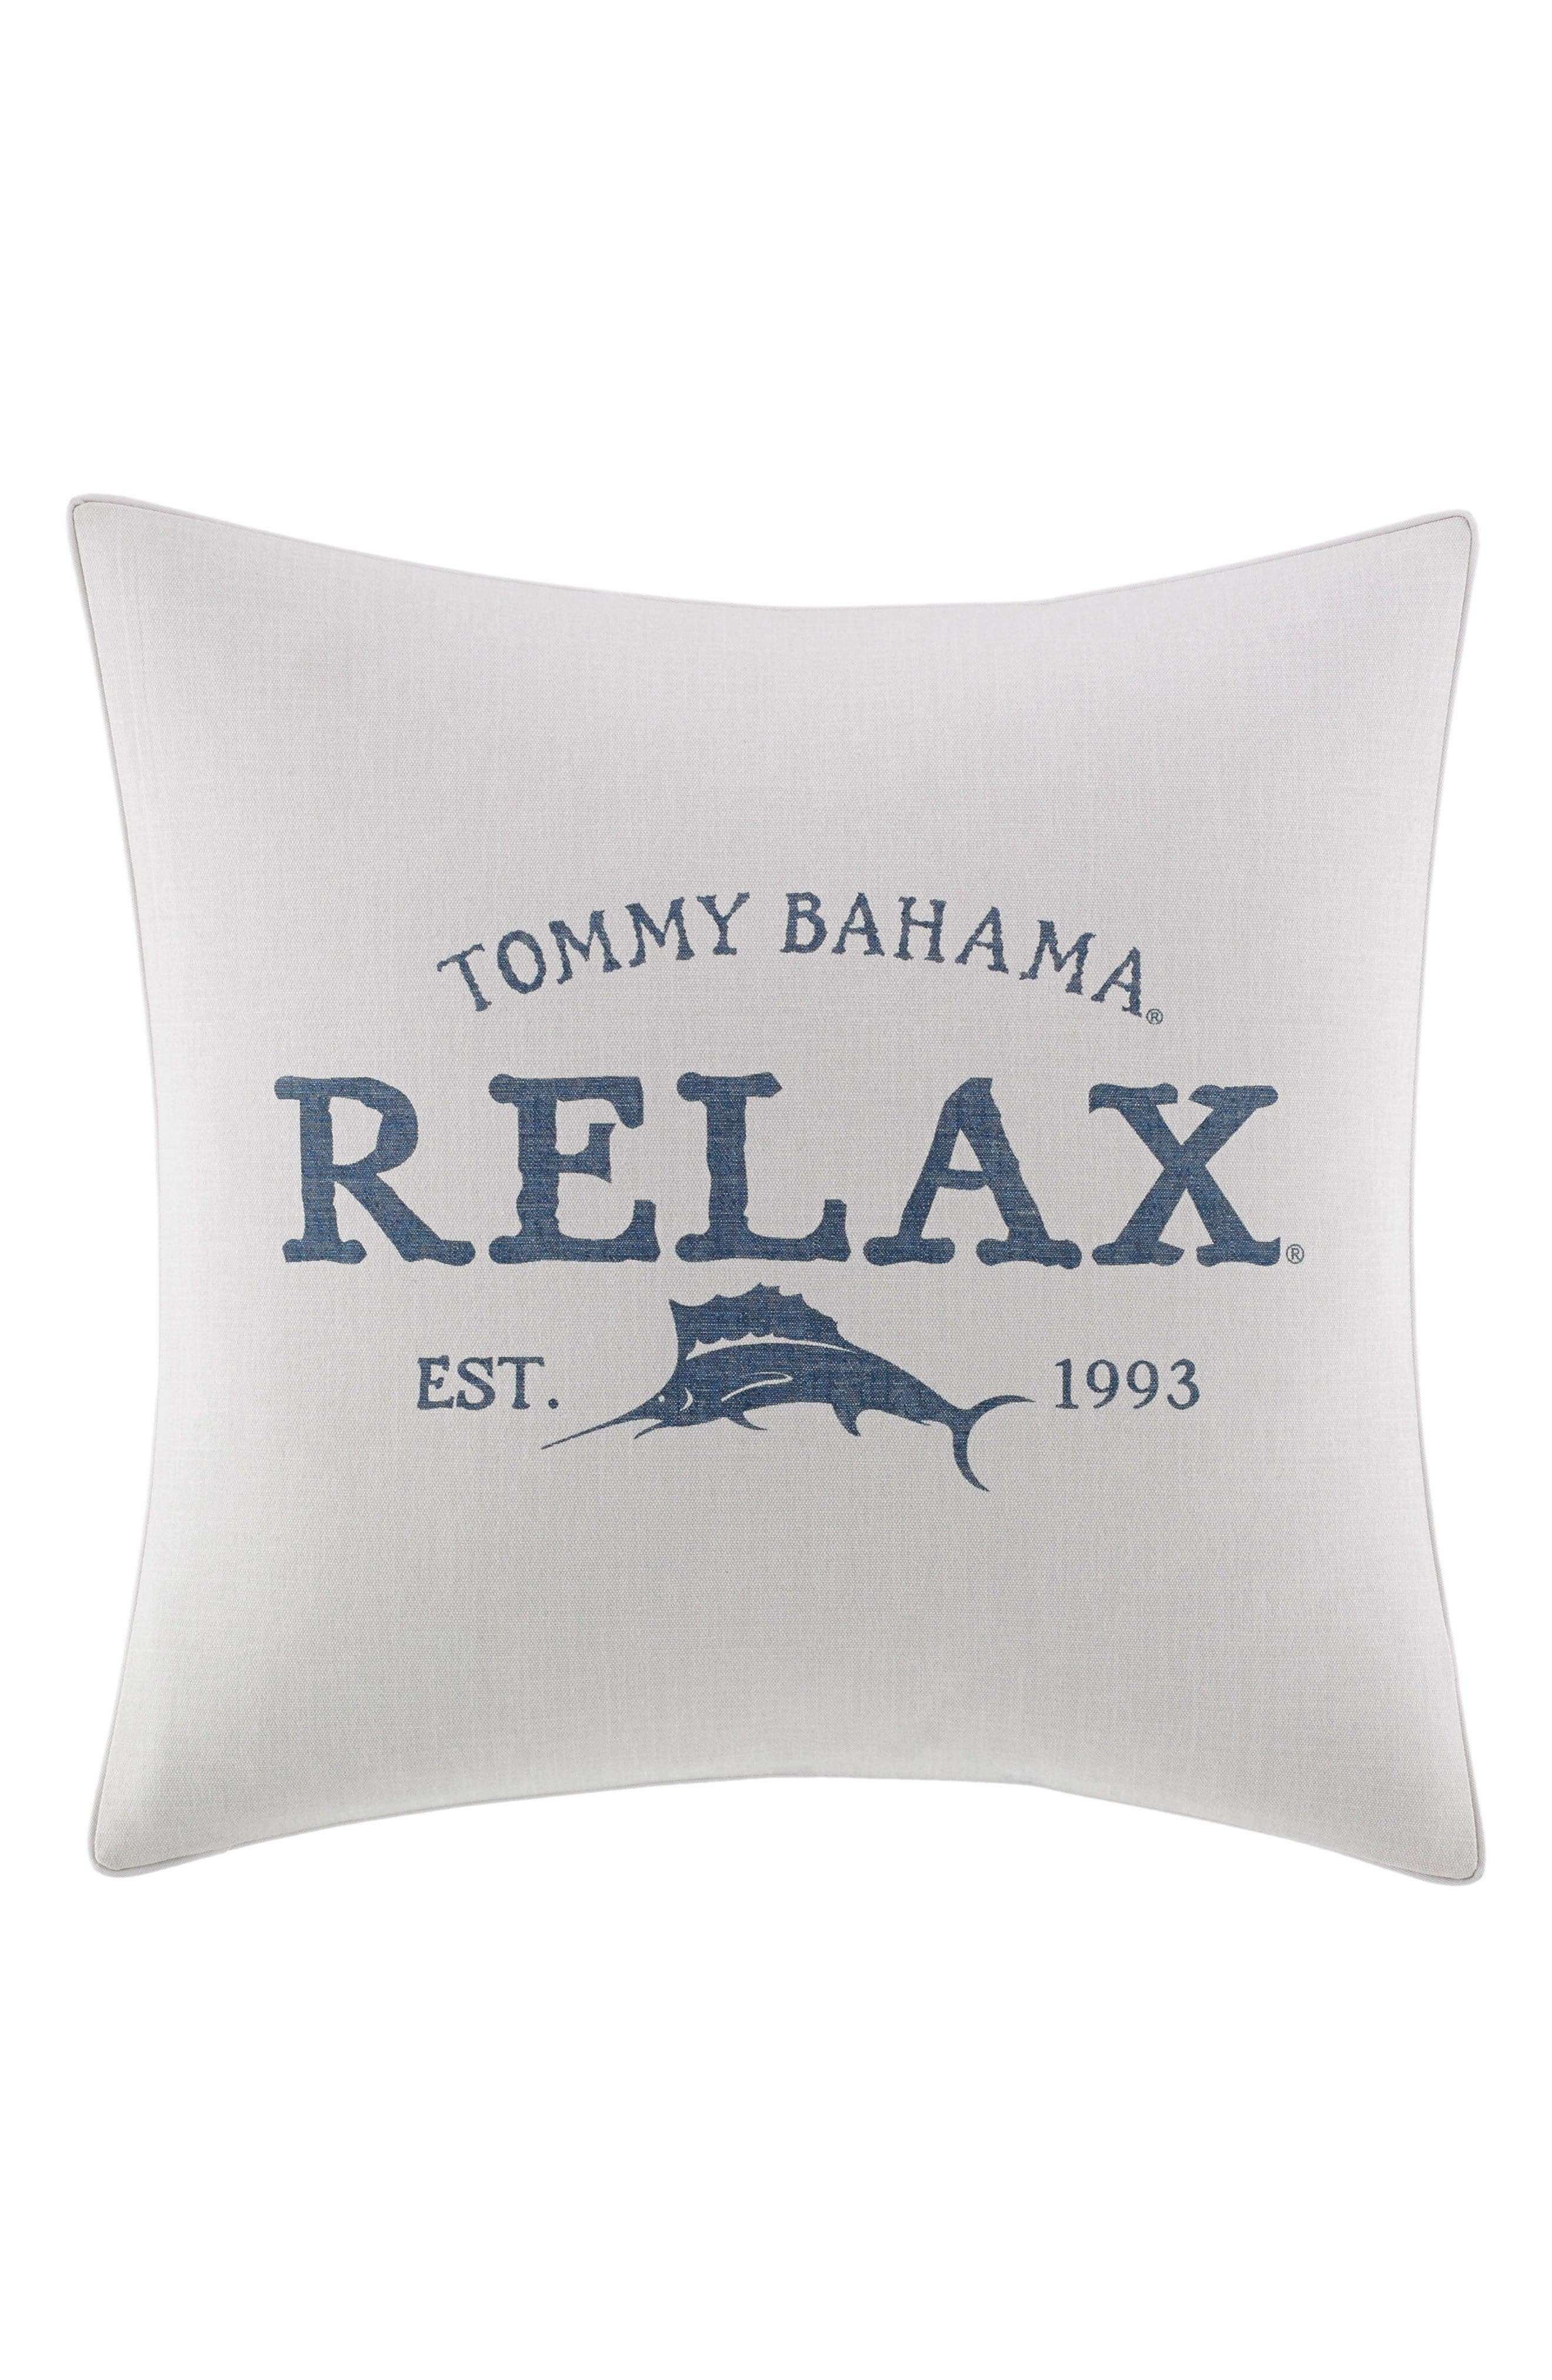 Main Image - Tommy Bahama Relax Accent Pillow